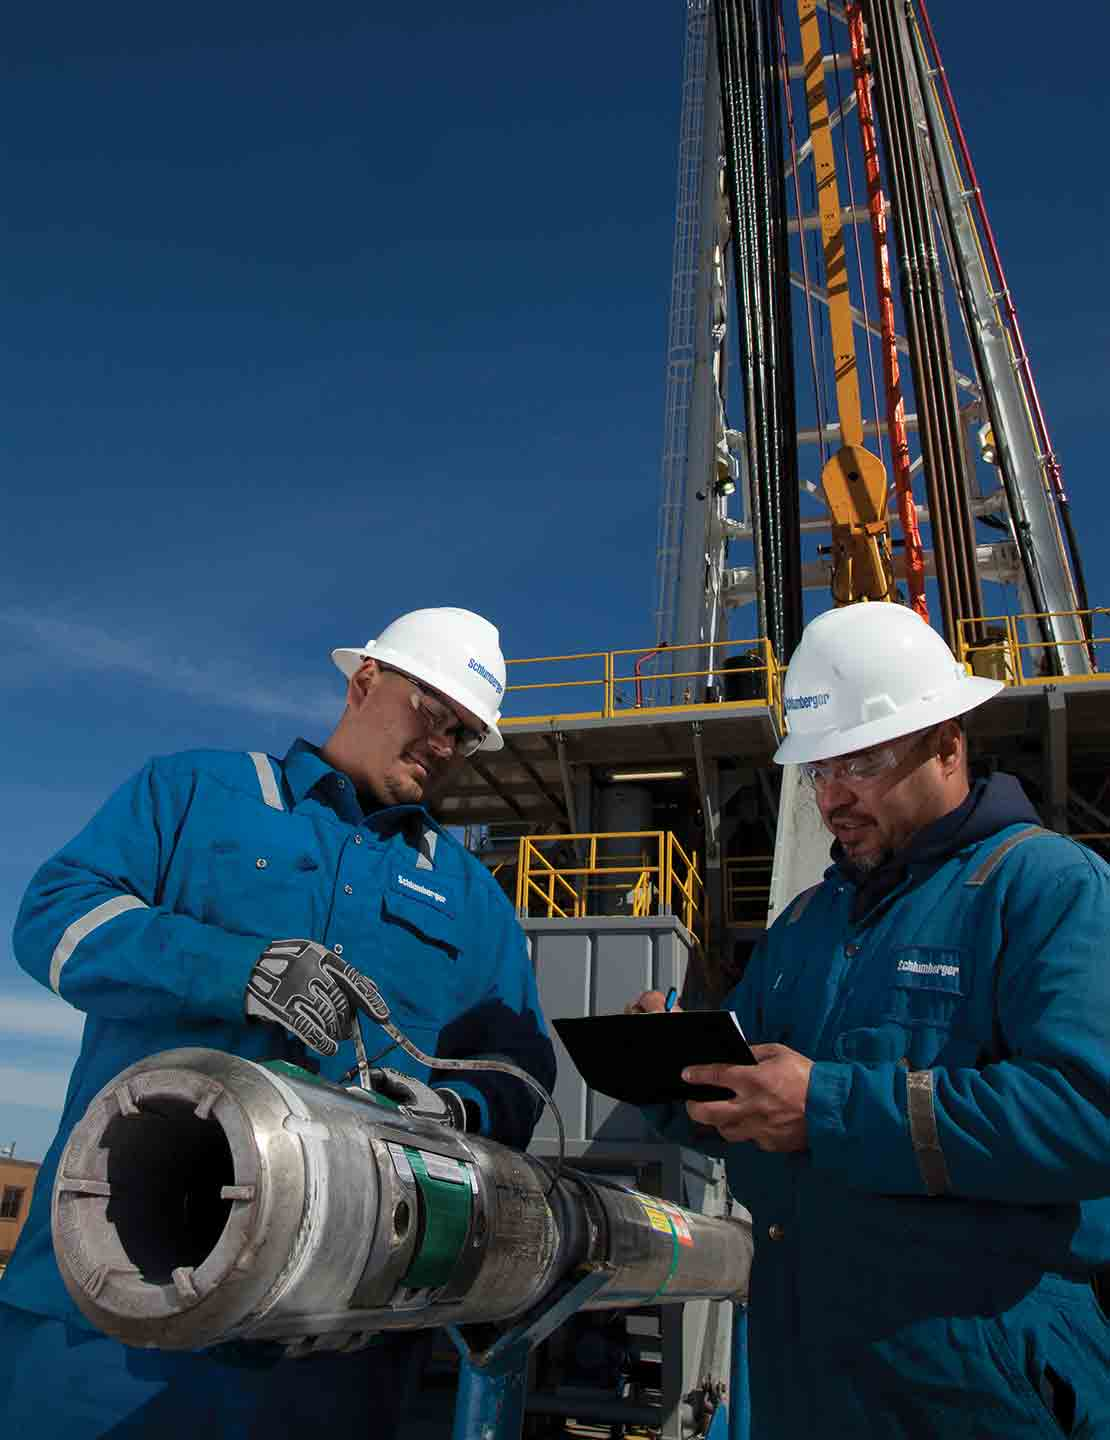 Two Schlumberger field technicians at a rigsite confirm specifications for a PowerDrive Orbit RSS prior to running downhole